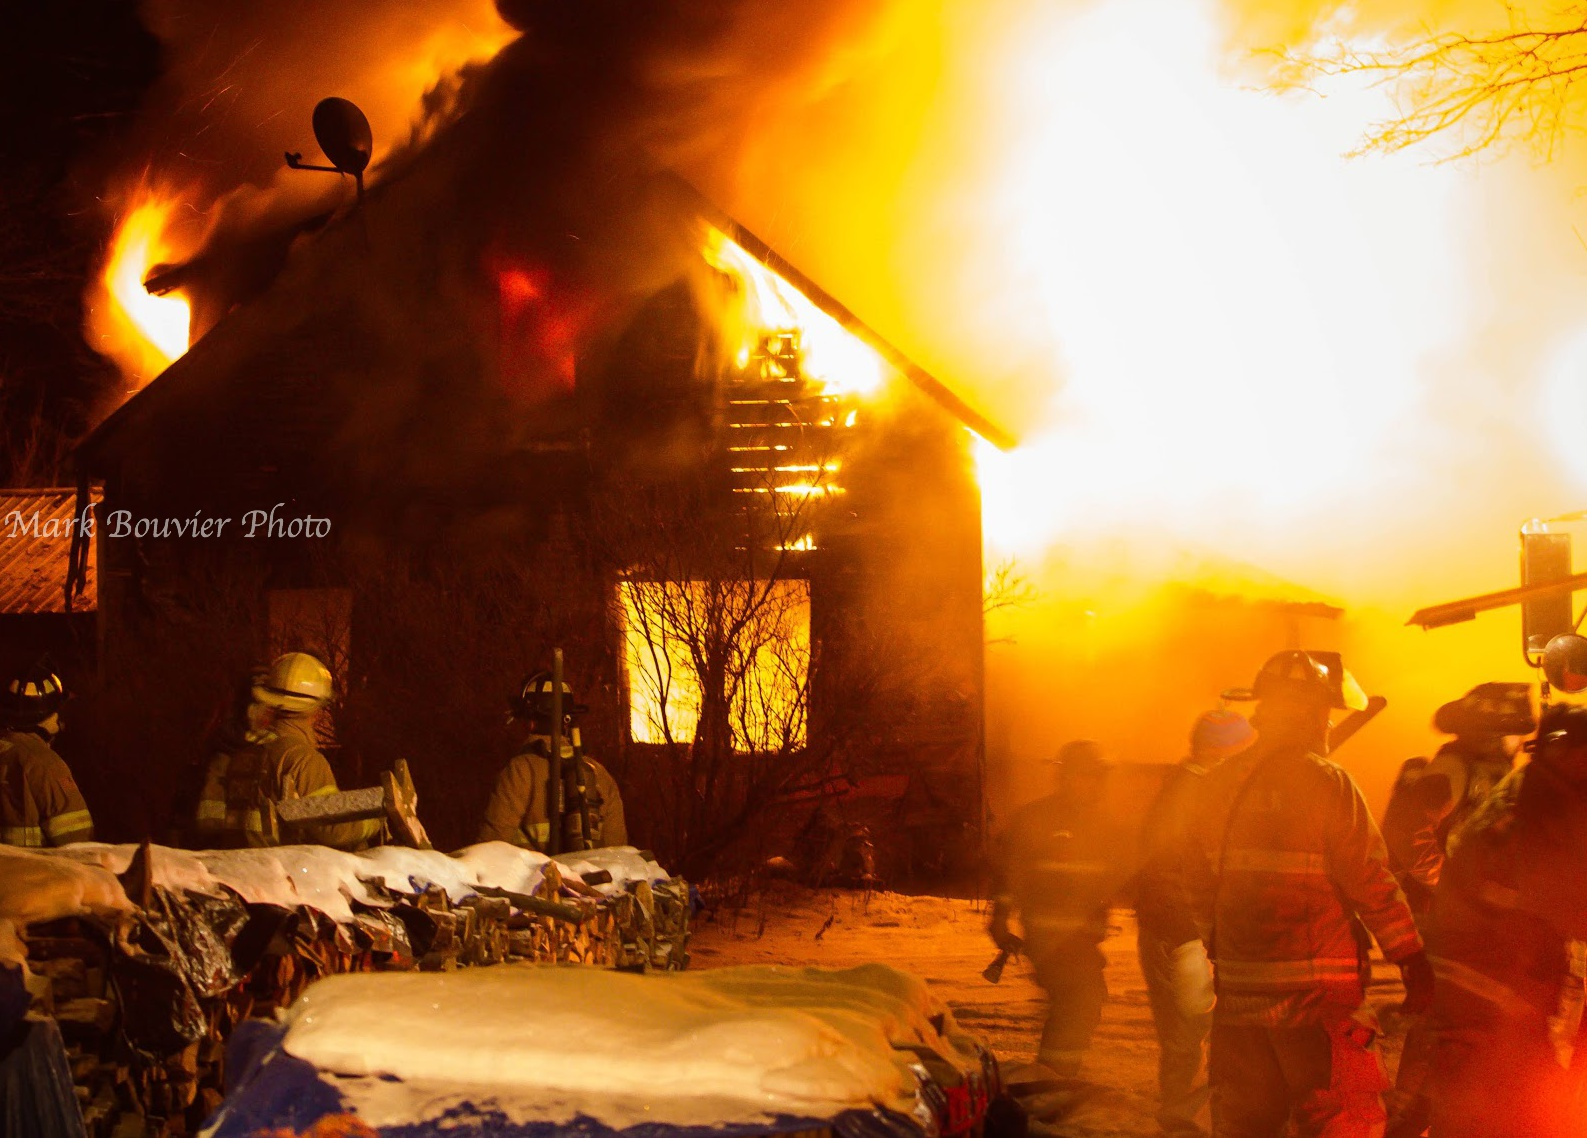 Tactics & Strategies for Attic & Basement Fires